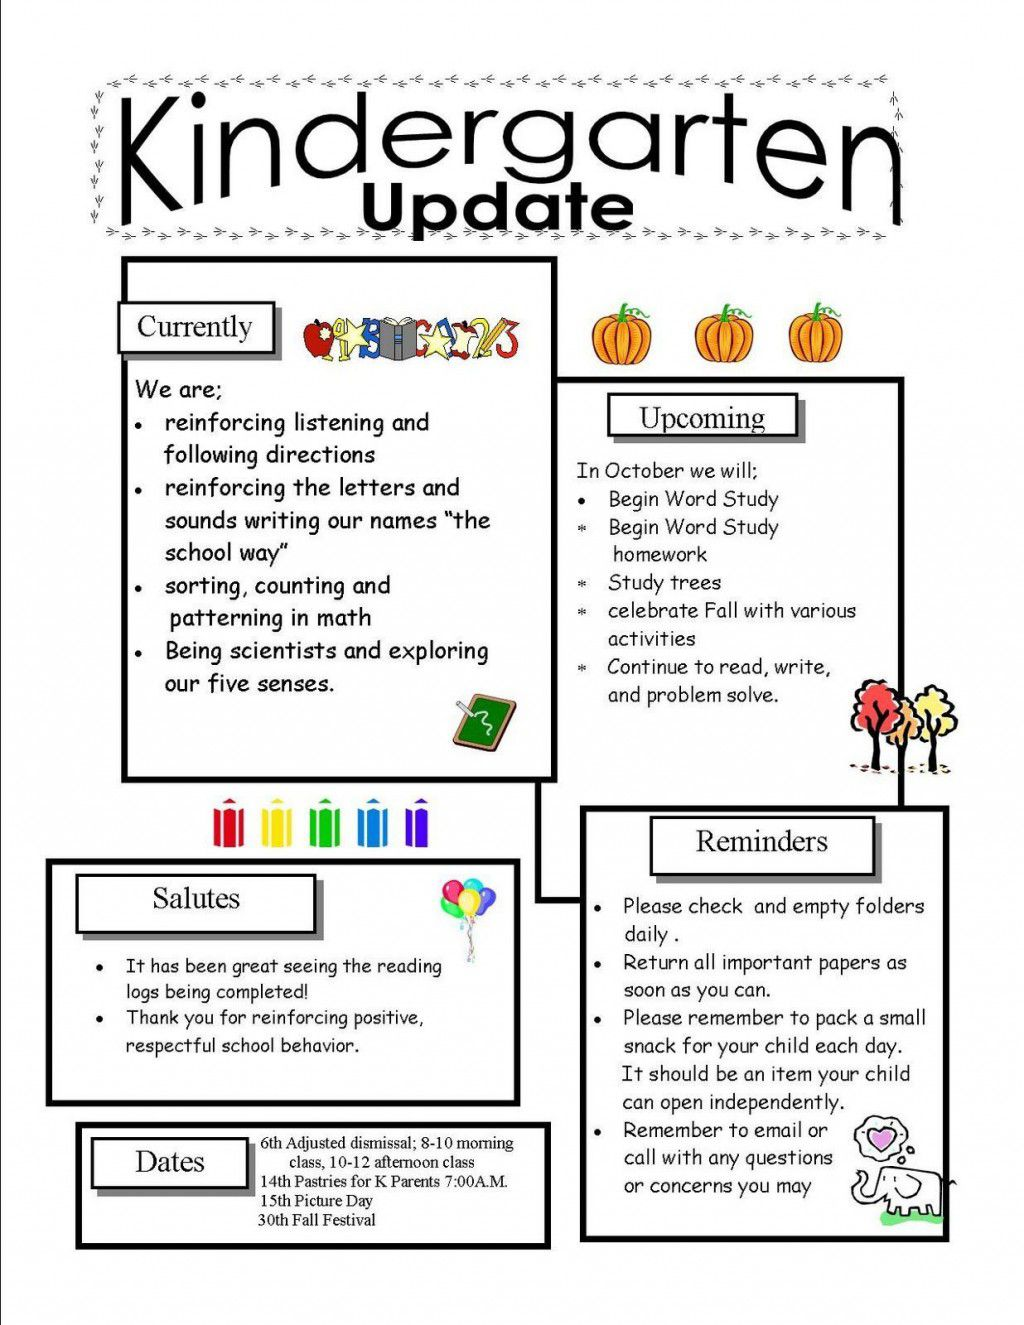 002 Phenomenal School Newsletter Template Word Highest Quality  Free Classroom For MicrosoftFull